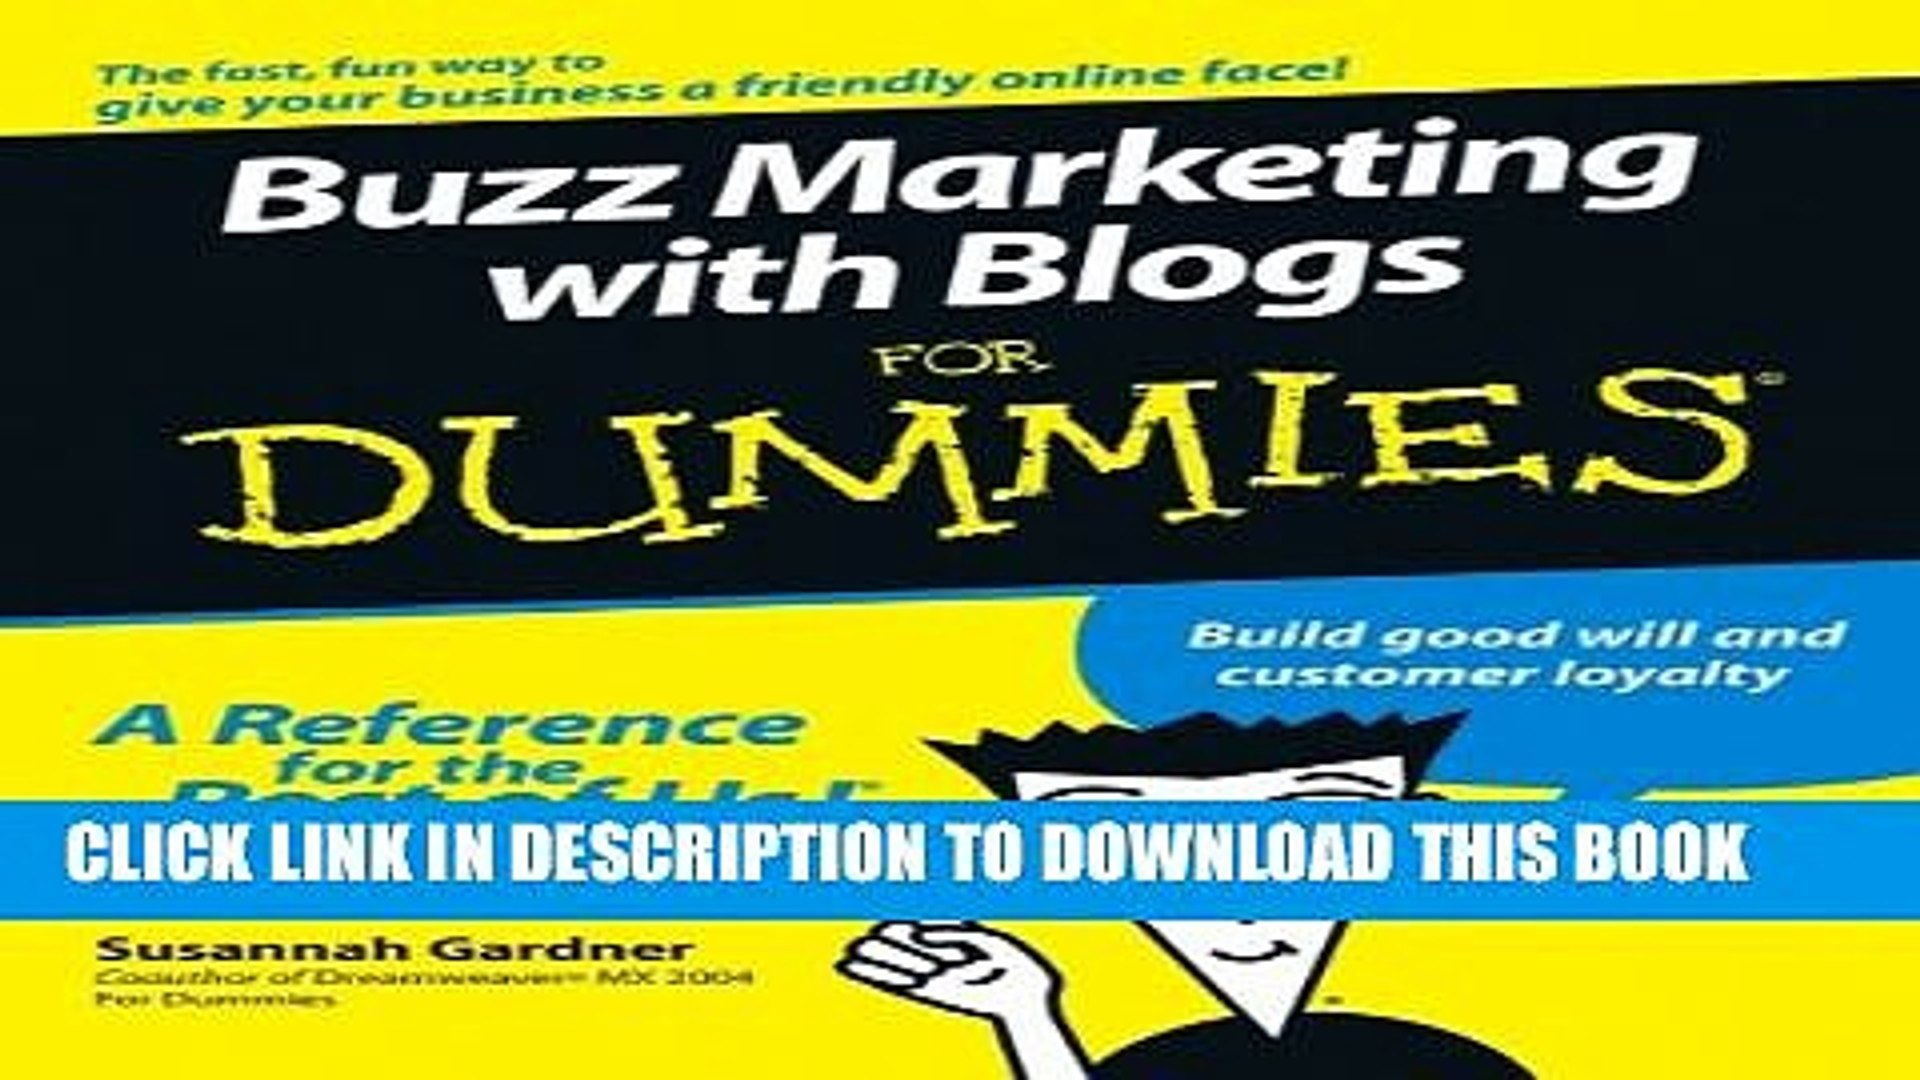 Collection Book Buzz Marketing with Blogs For Dummies